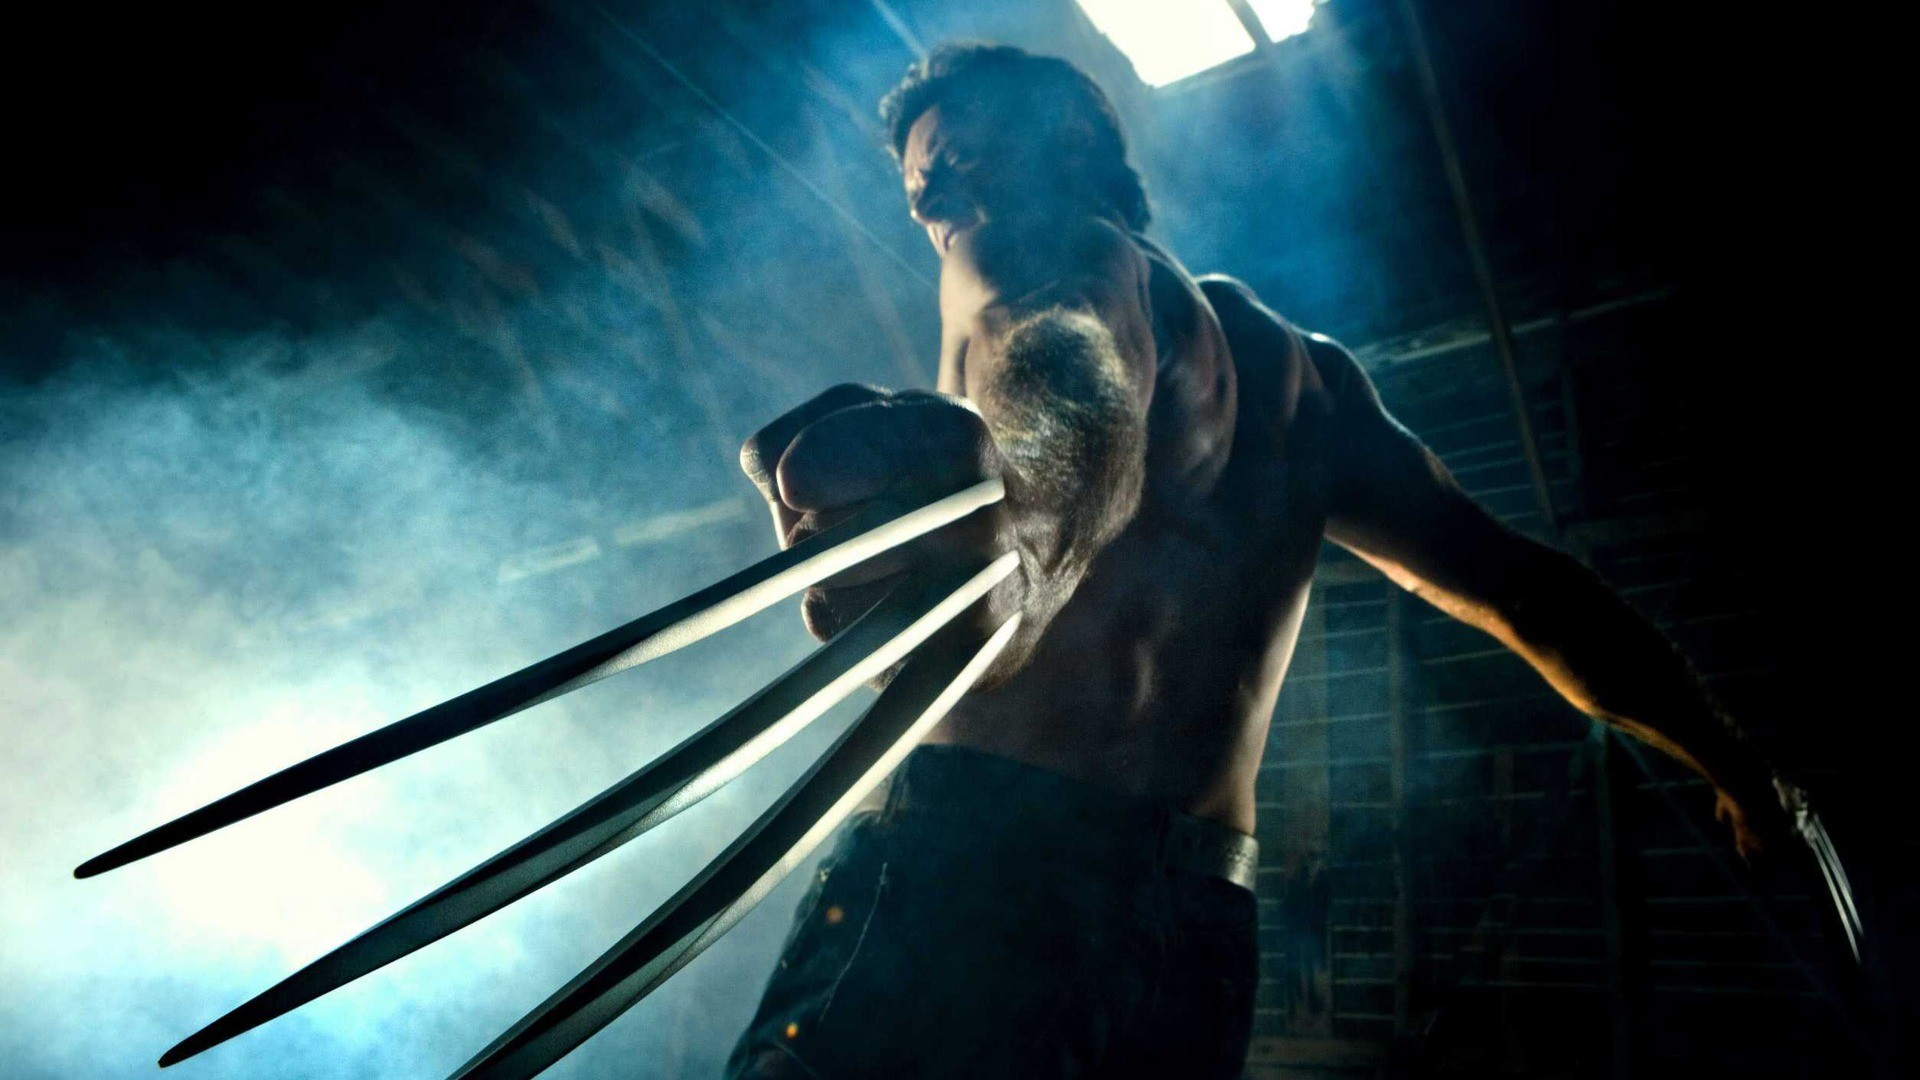 1920x1080 X-Men Origins: Wolverine HD Wallpaper #4 - .